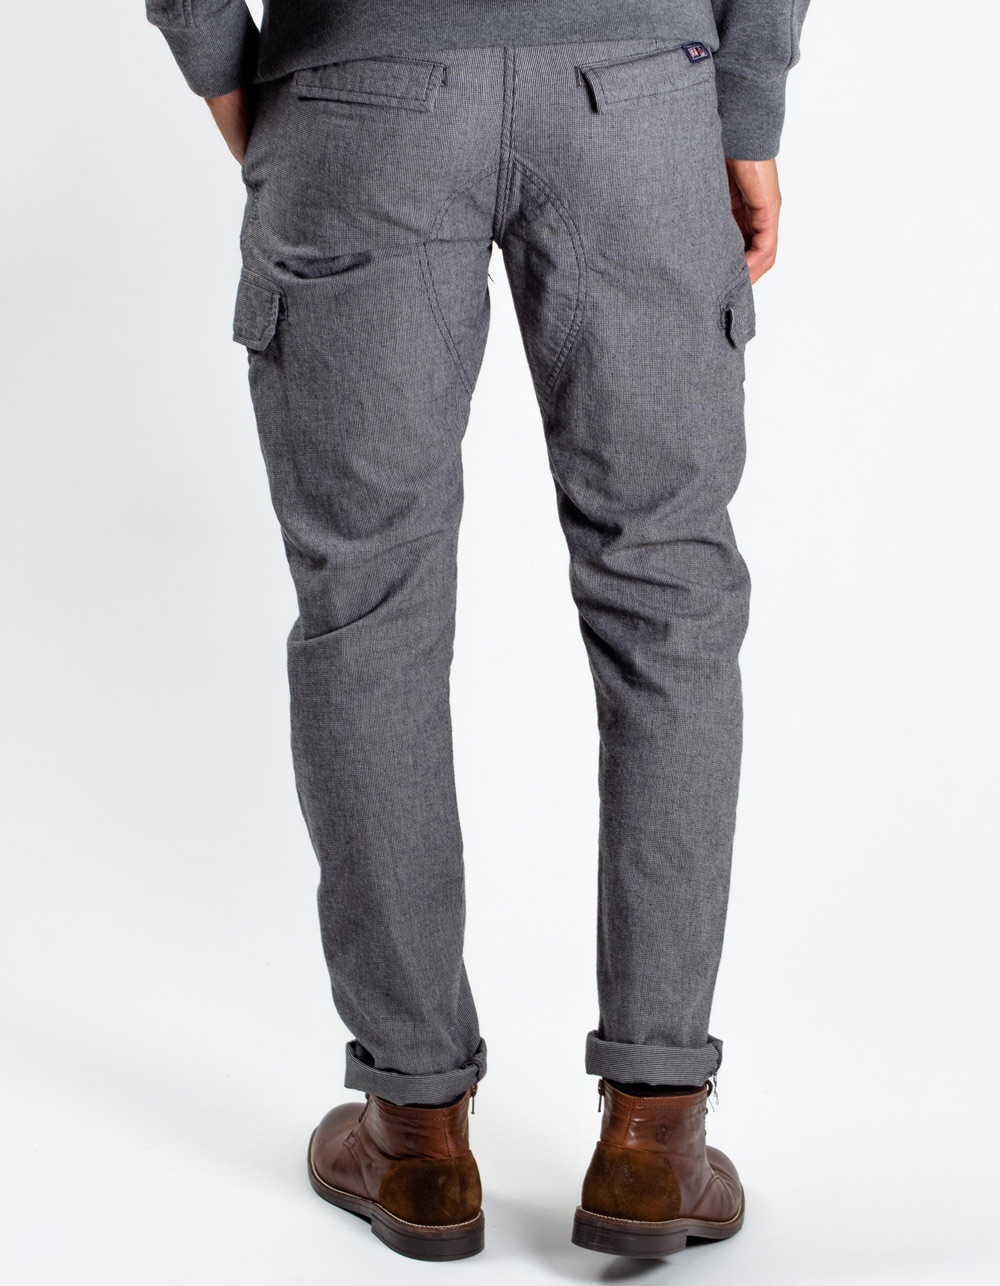 Grey cargo trousers with ropes - Backside